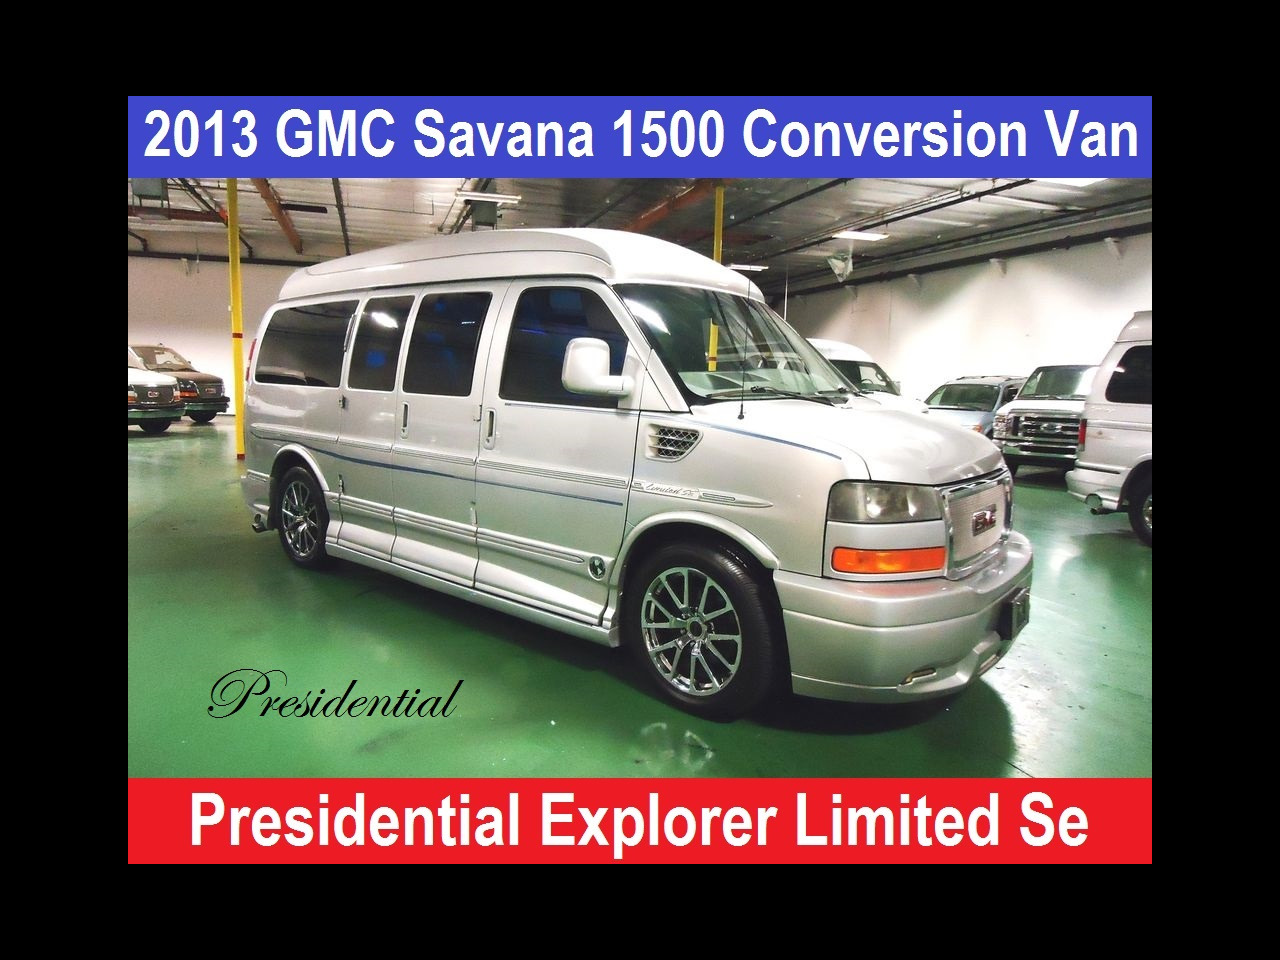 2013 GMC Savana PRESIDENTIAL EXPLORER LIMITED SE